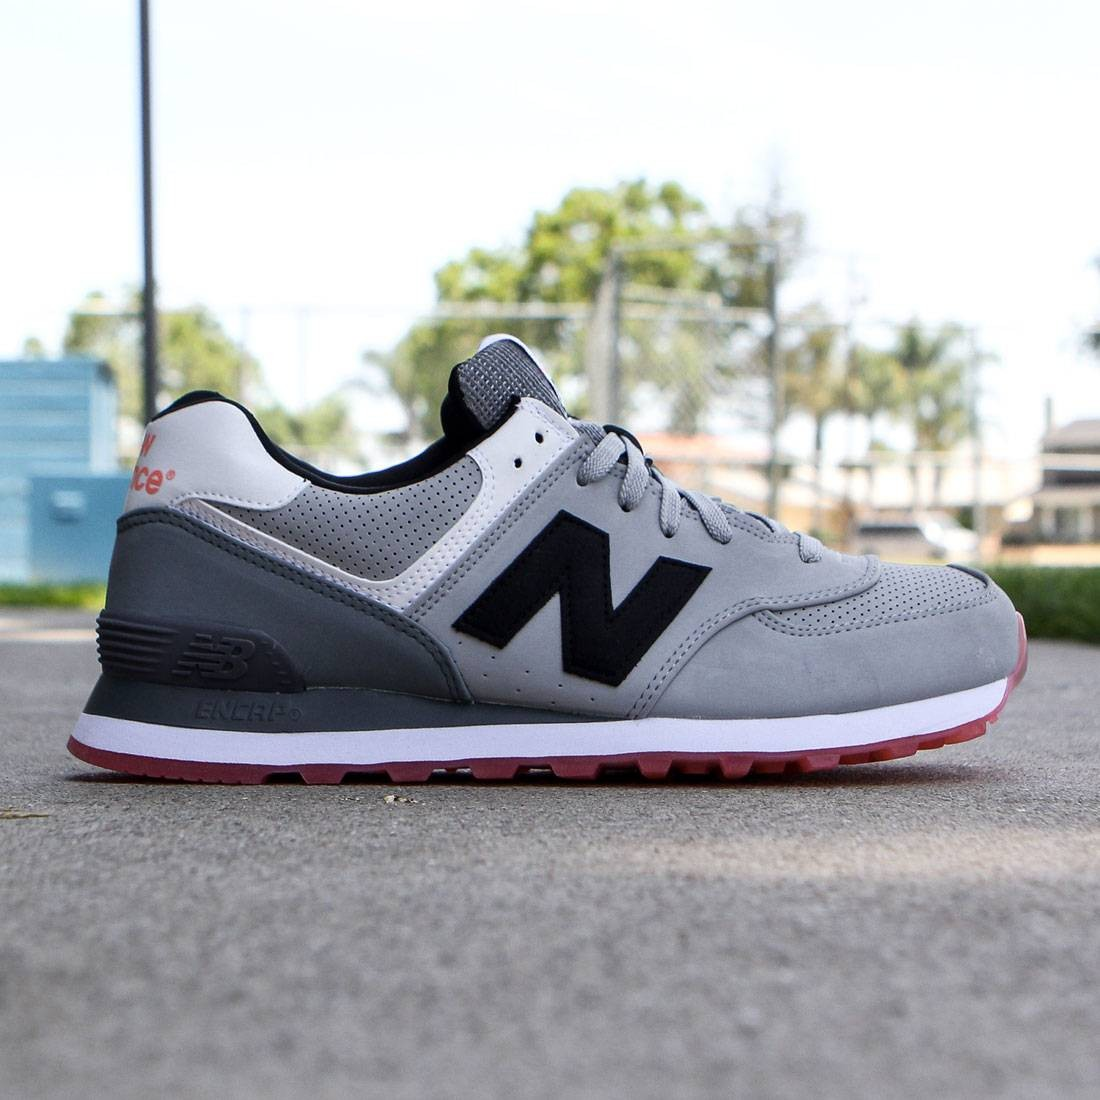 promo code for new balance 574 mens 11.5 7981c 5ab4d